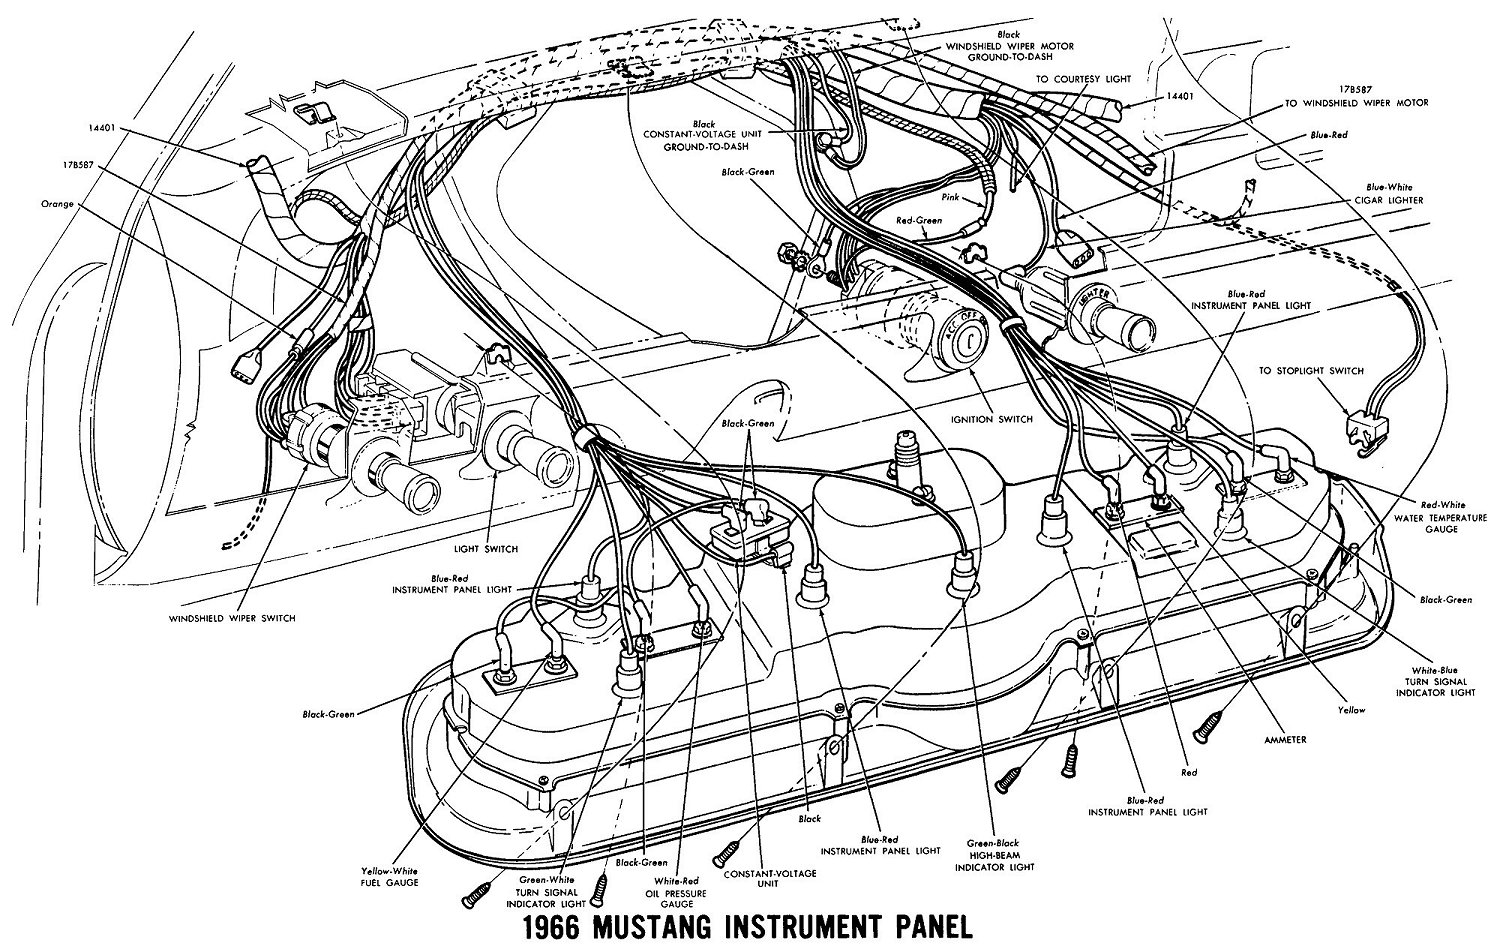 1966 Mustang Wiring Diagrams on 1964 chevy truck heater wiring diagram